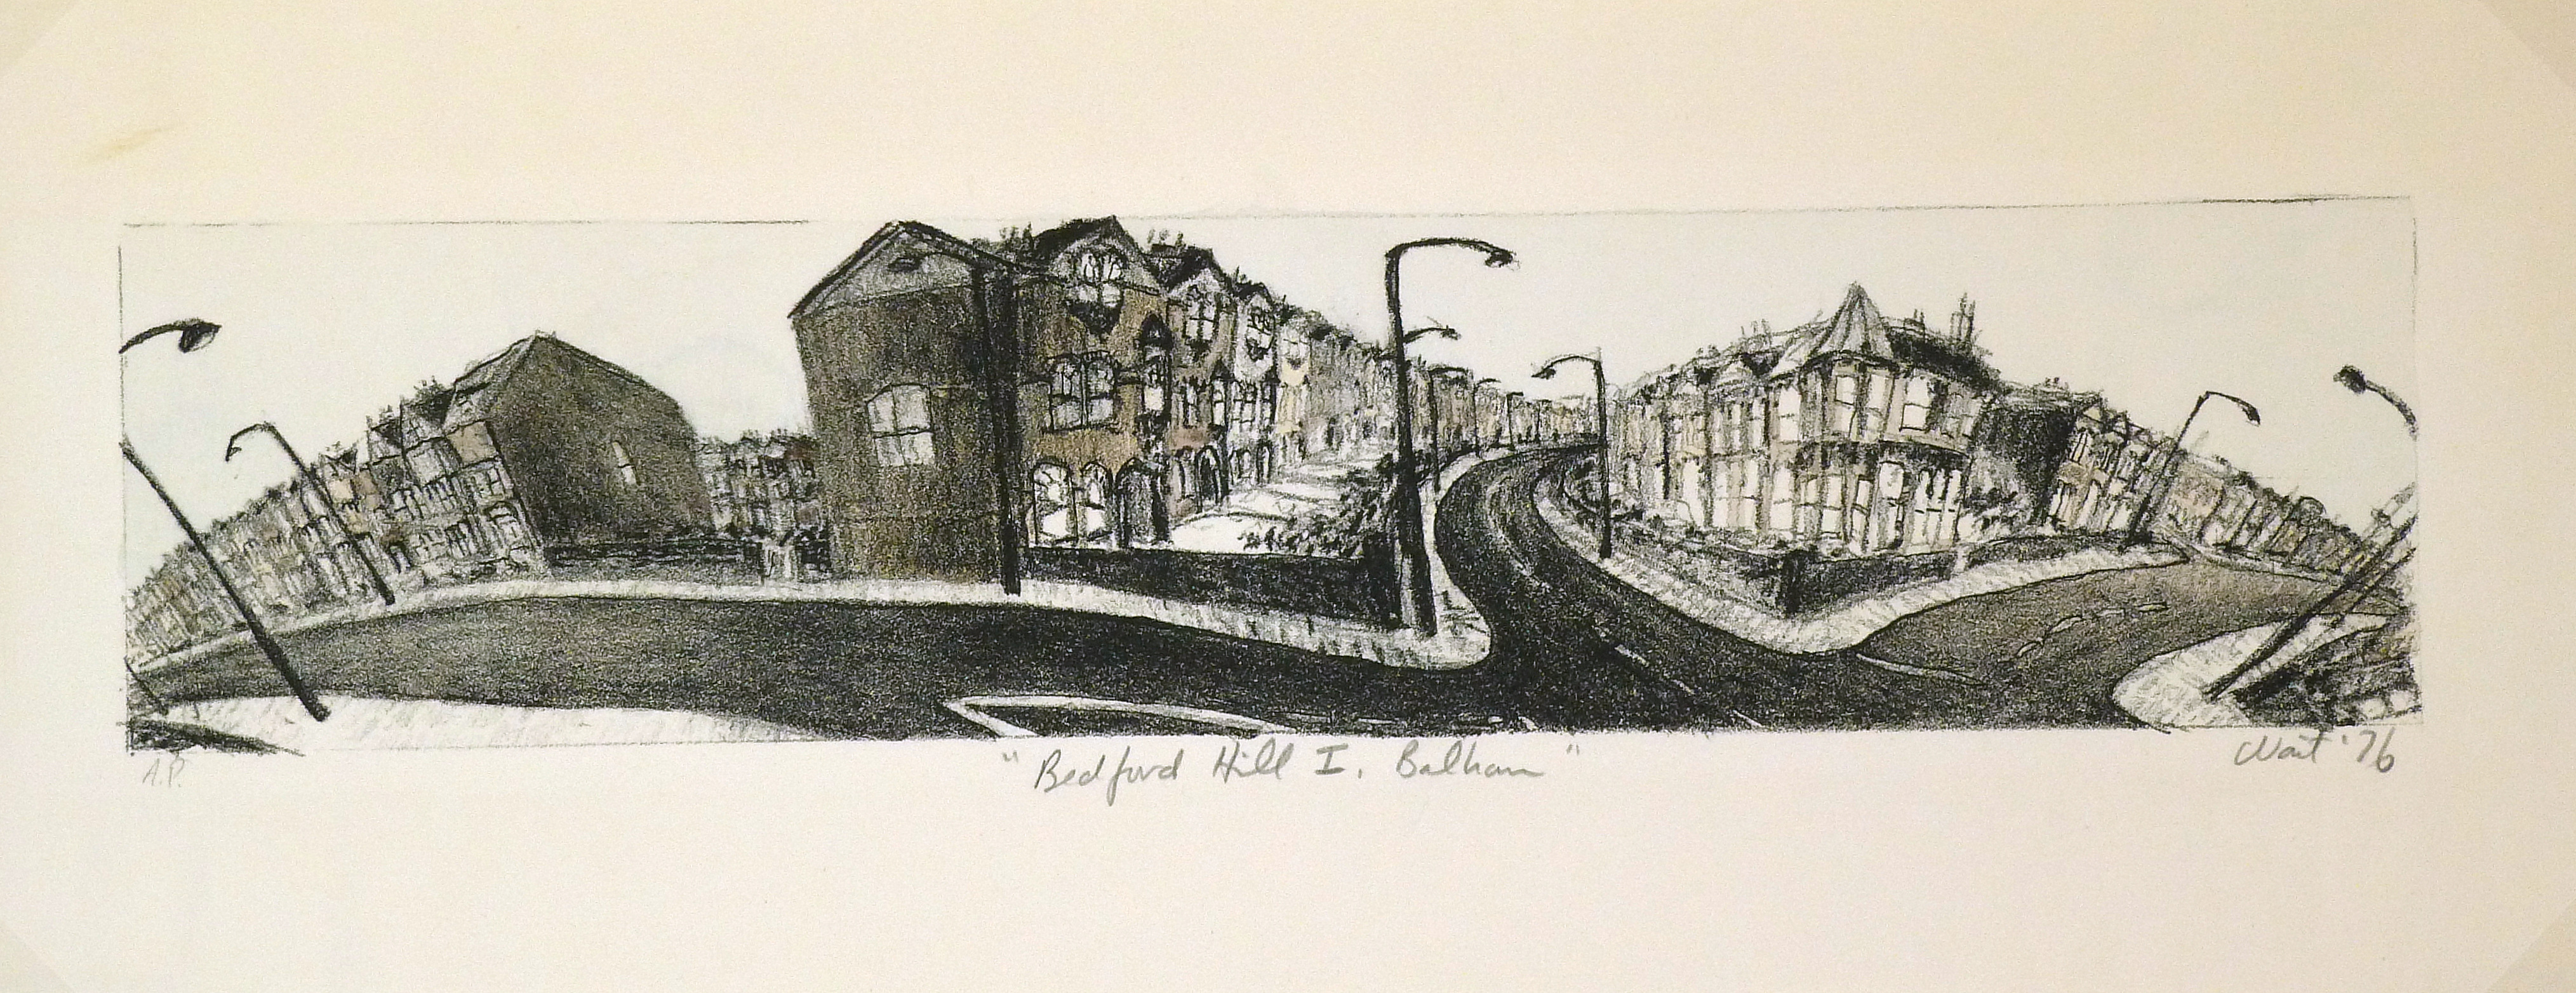 Bedford Hill Print, 1976-main-8277K